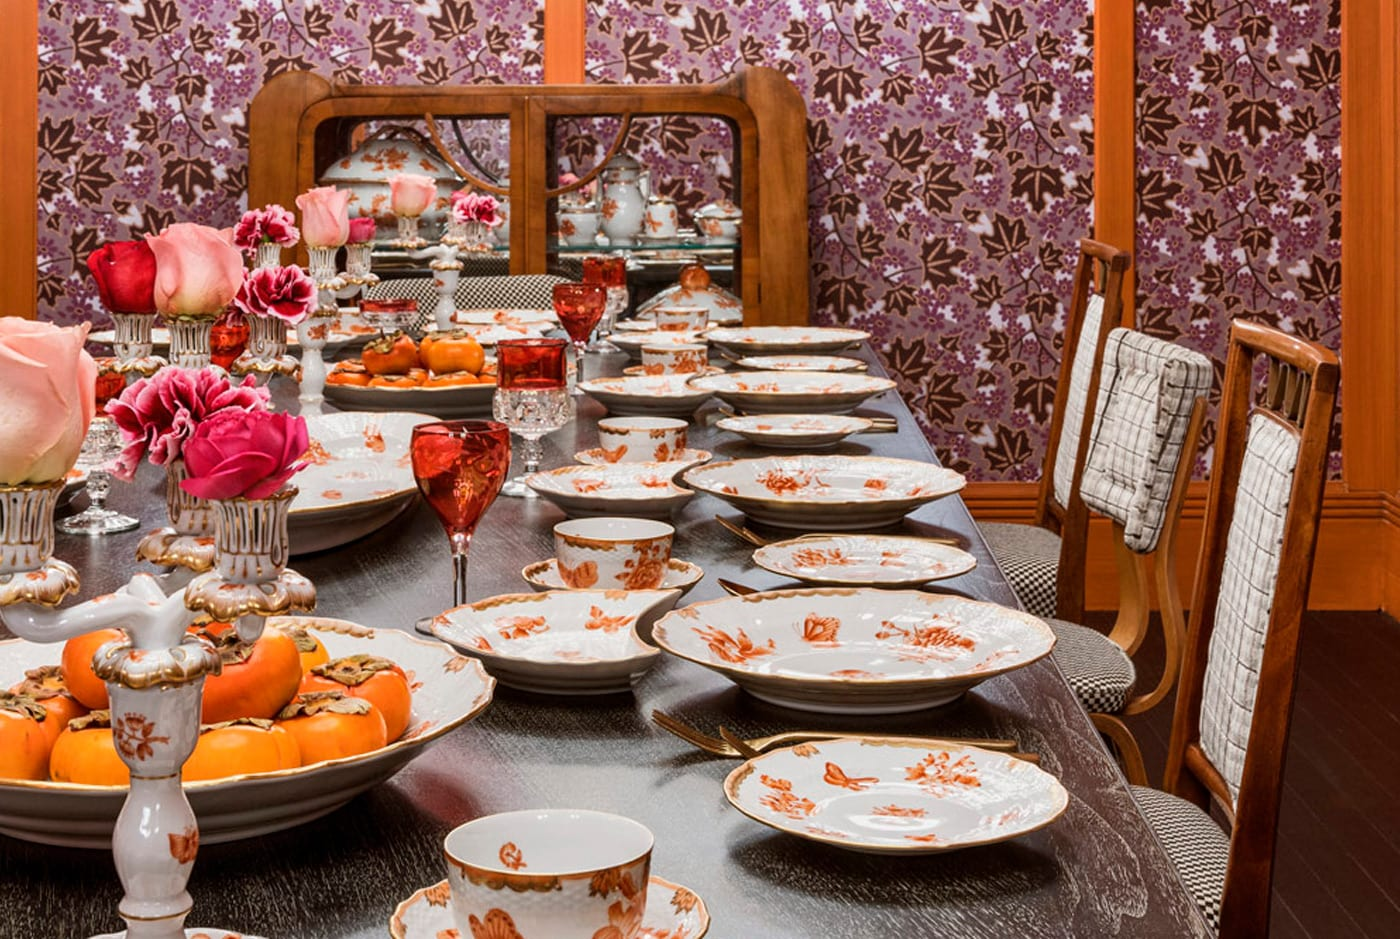 Gidla's Private Dining Room